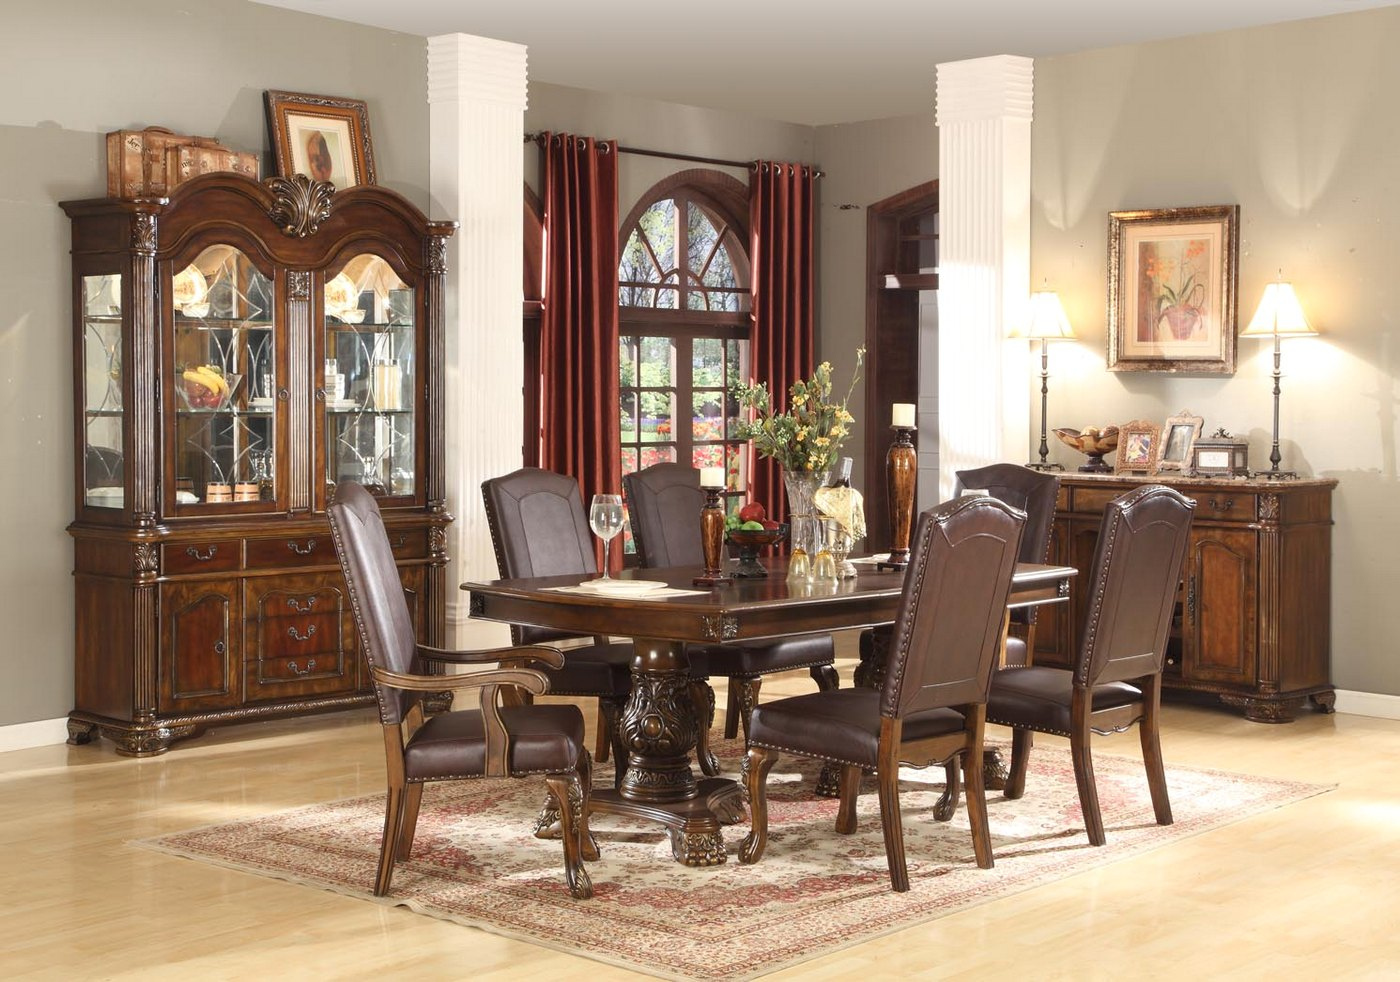 Royal Manor Dining Room Furniture Collection